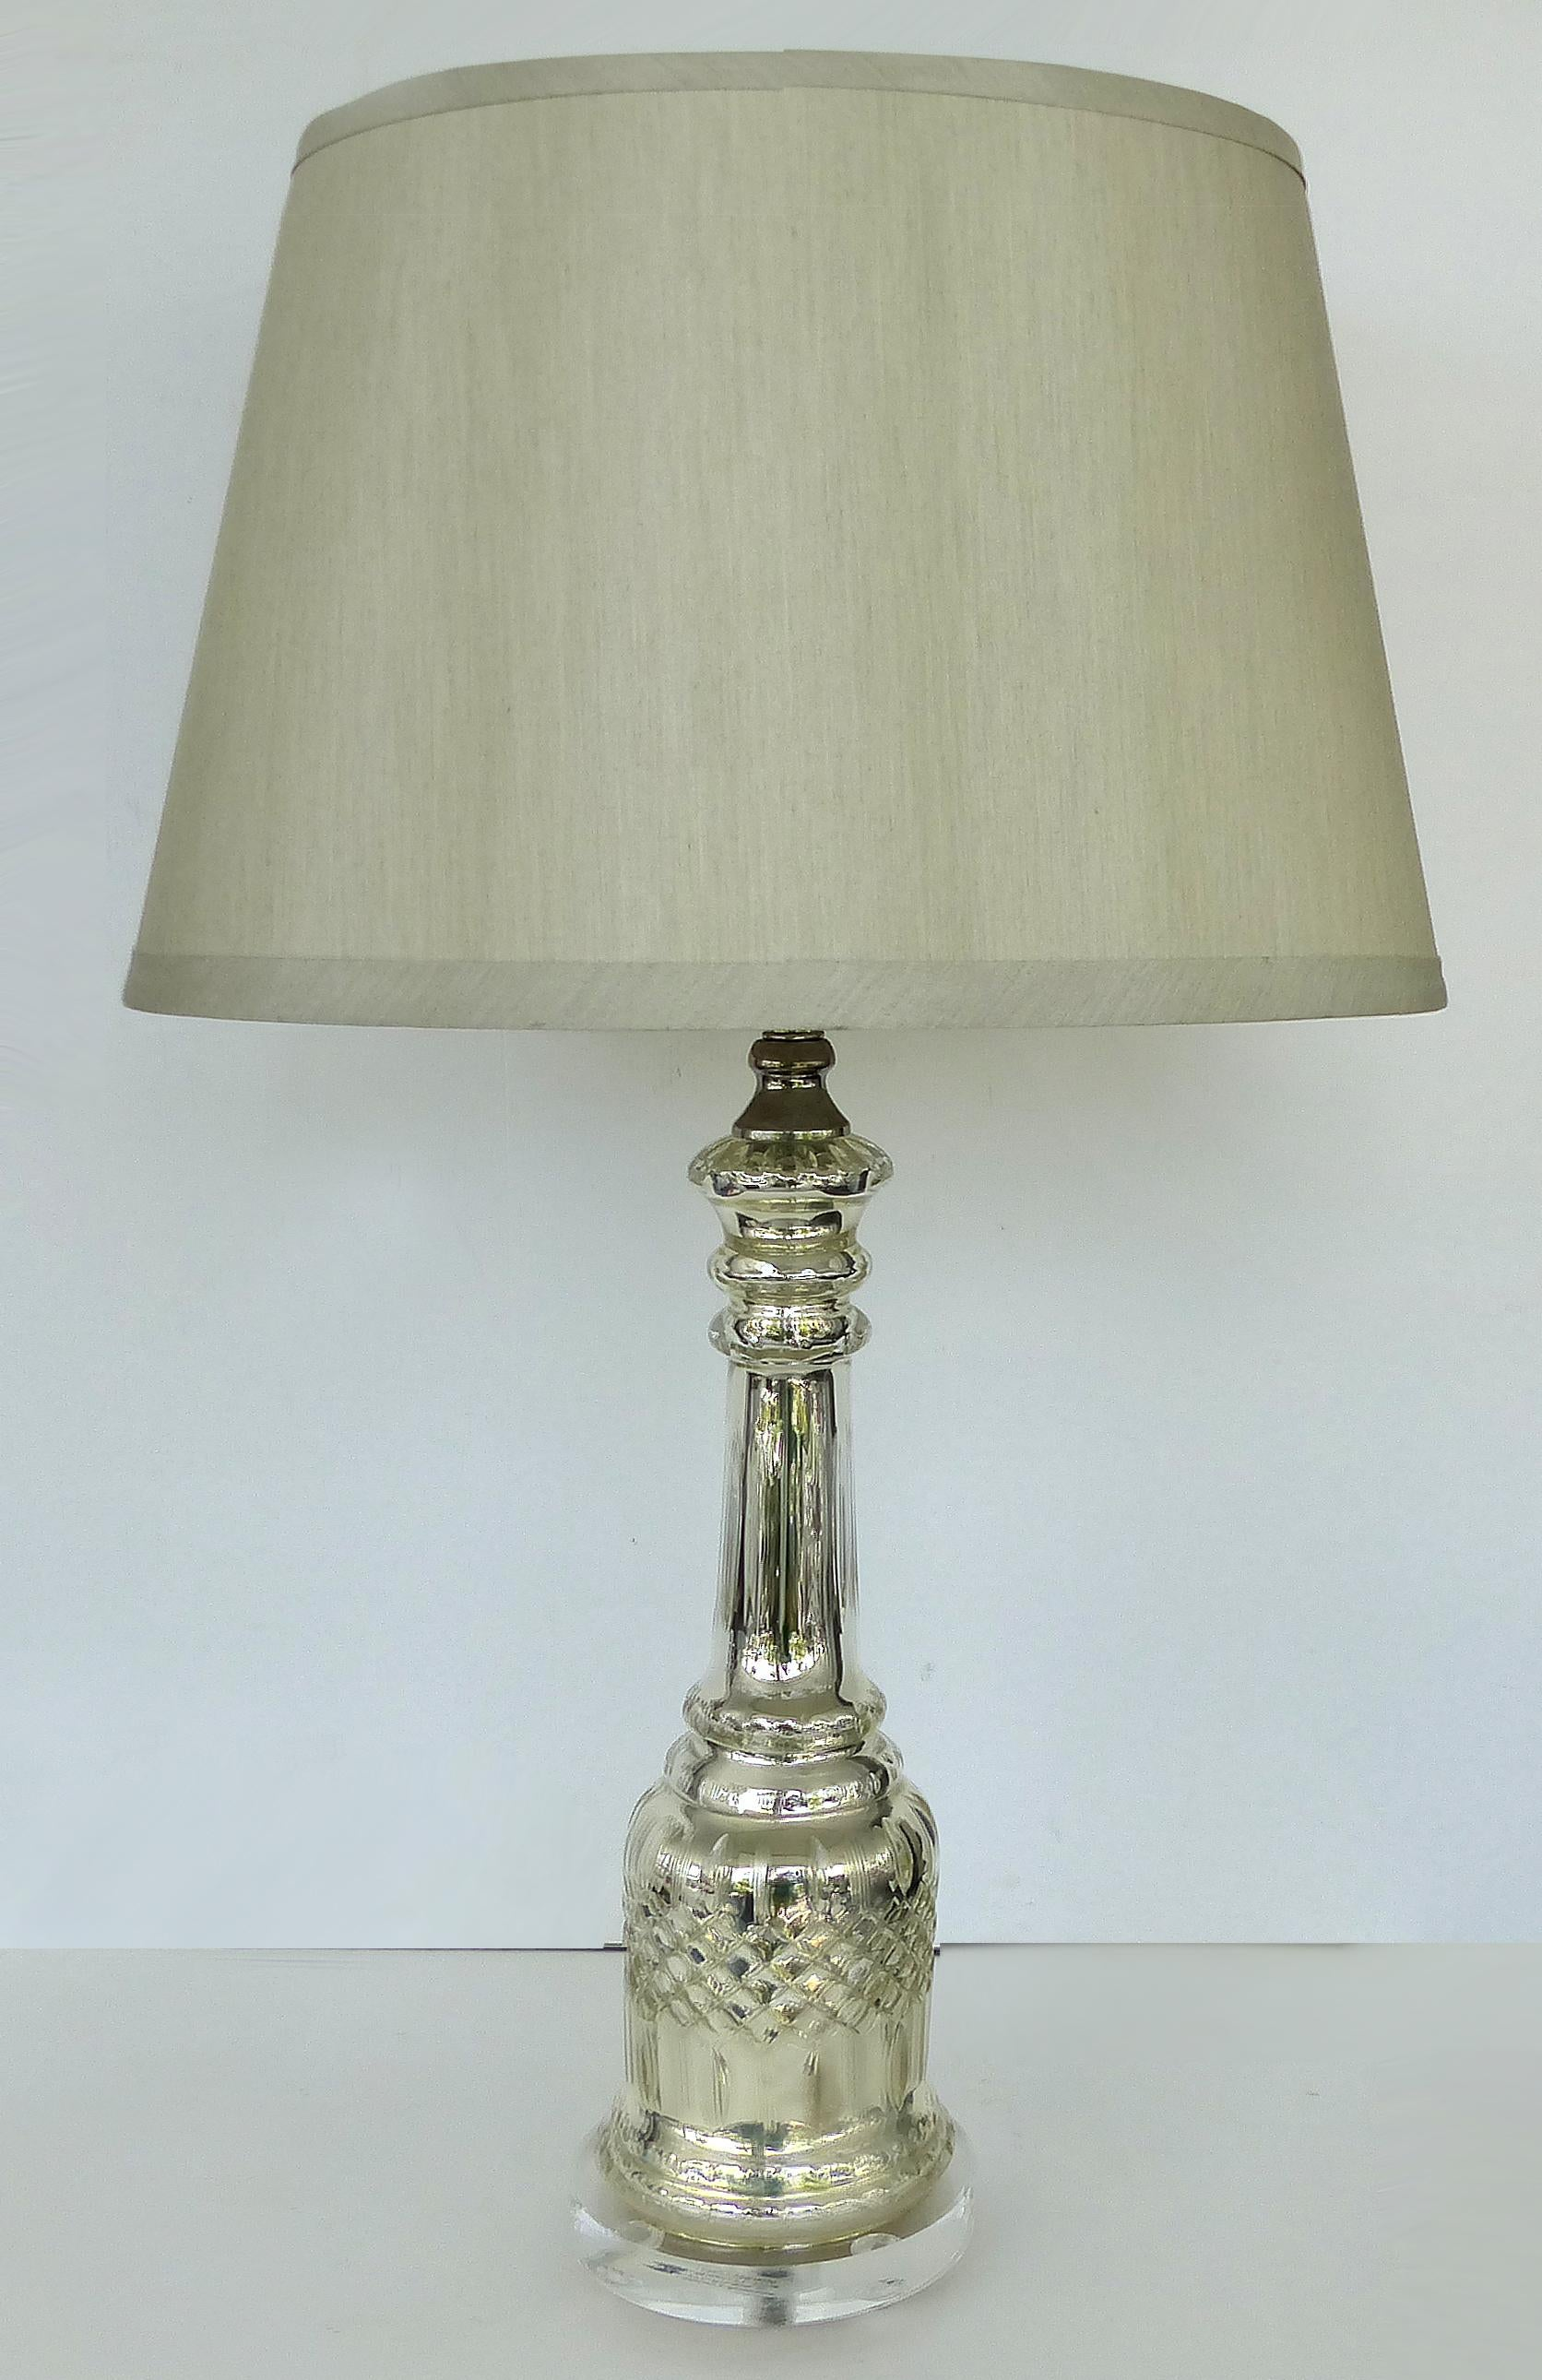 American Mercury Glass Table Lamps With Lucite Bases And Finials For Sale